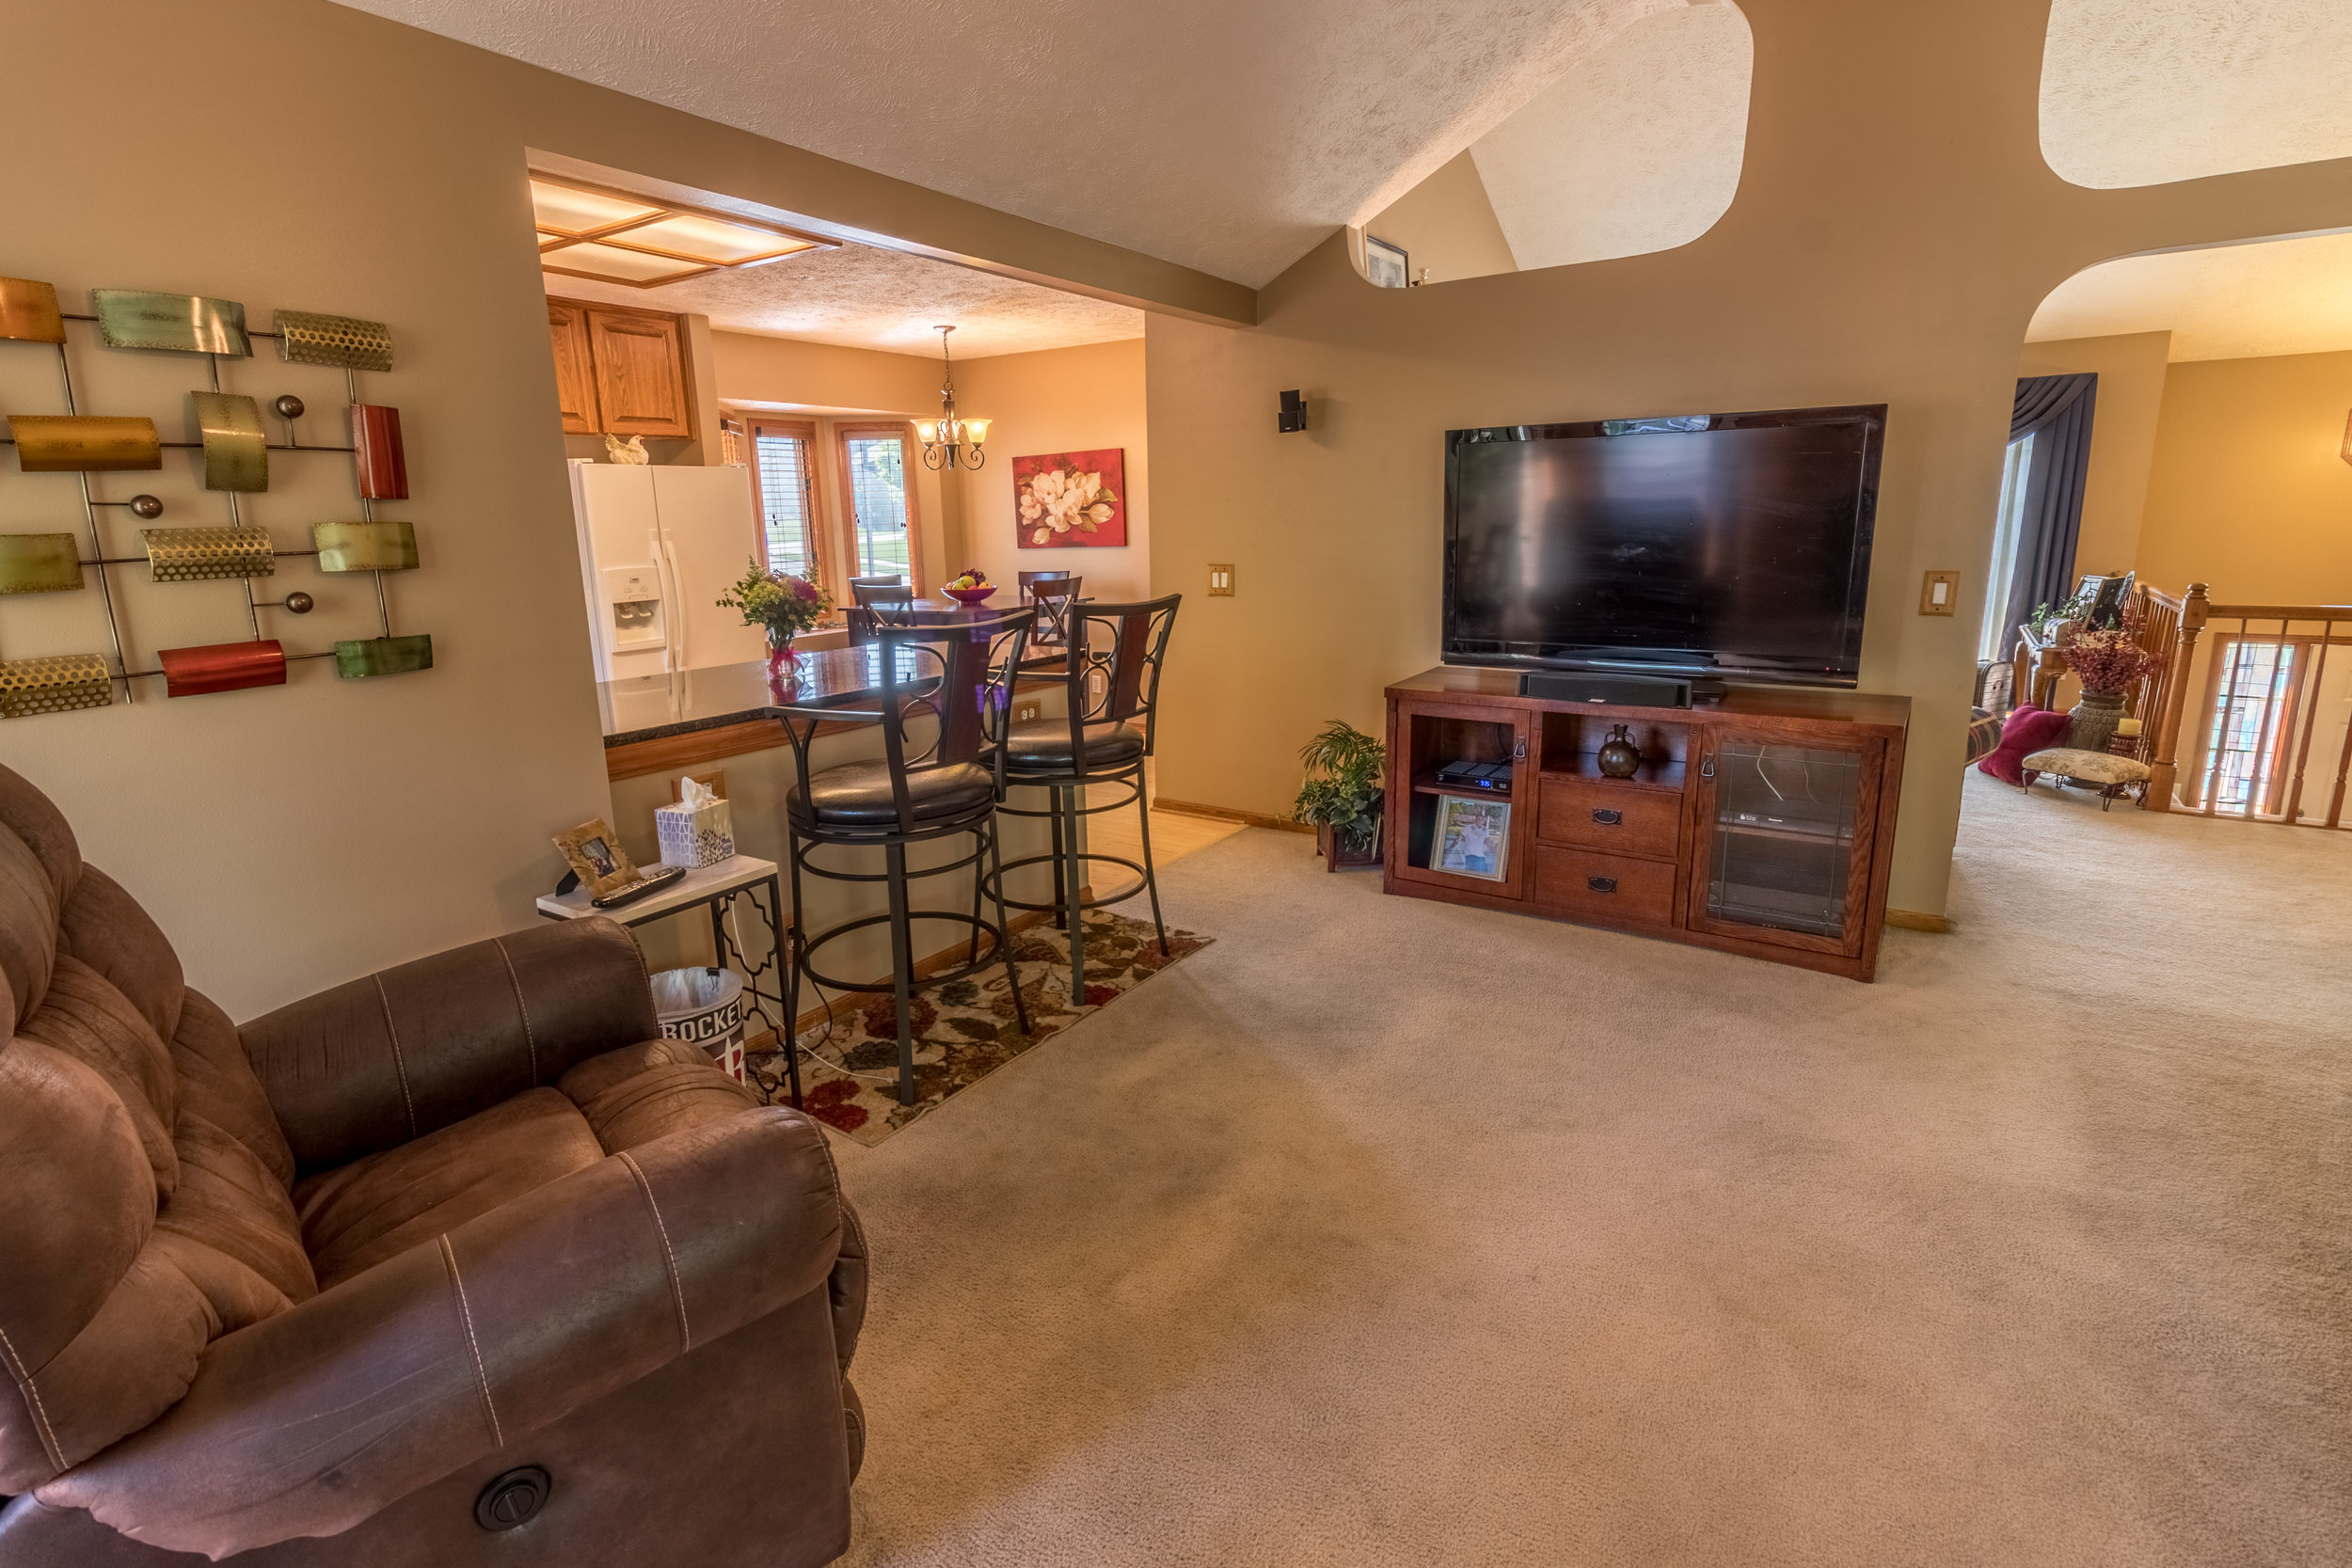 Omaha home for sale